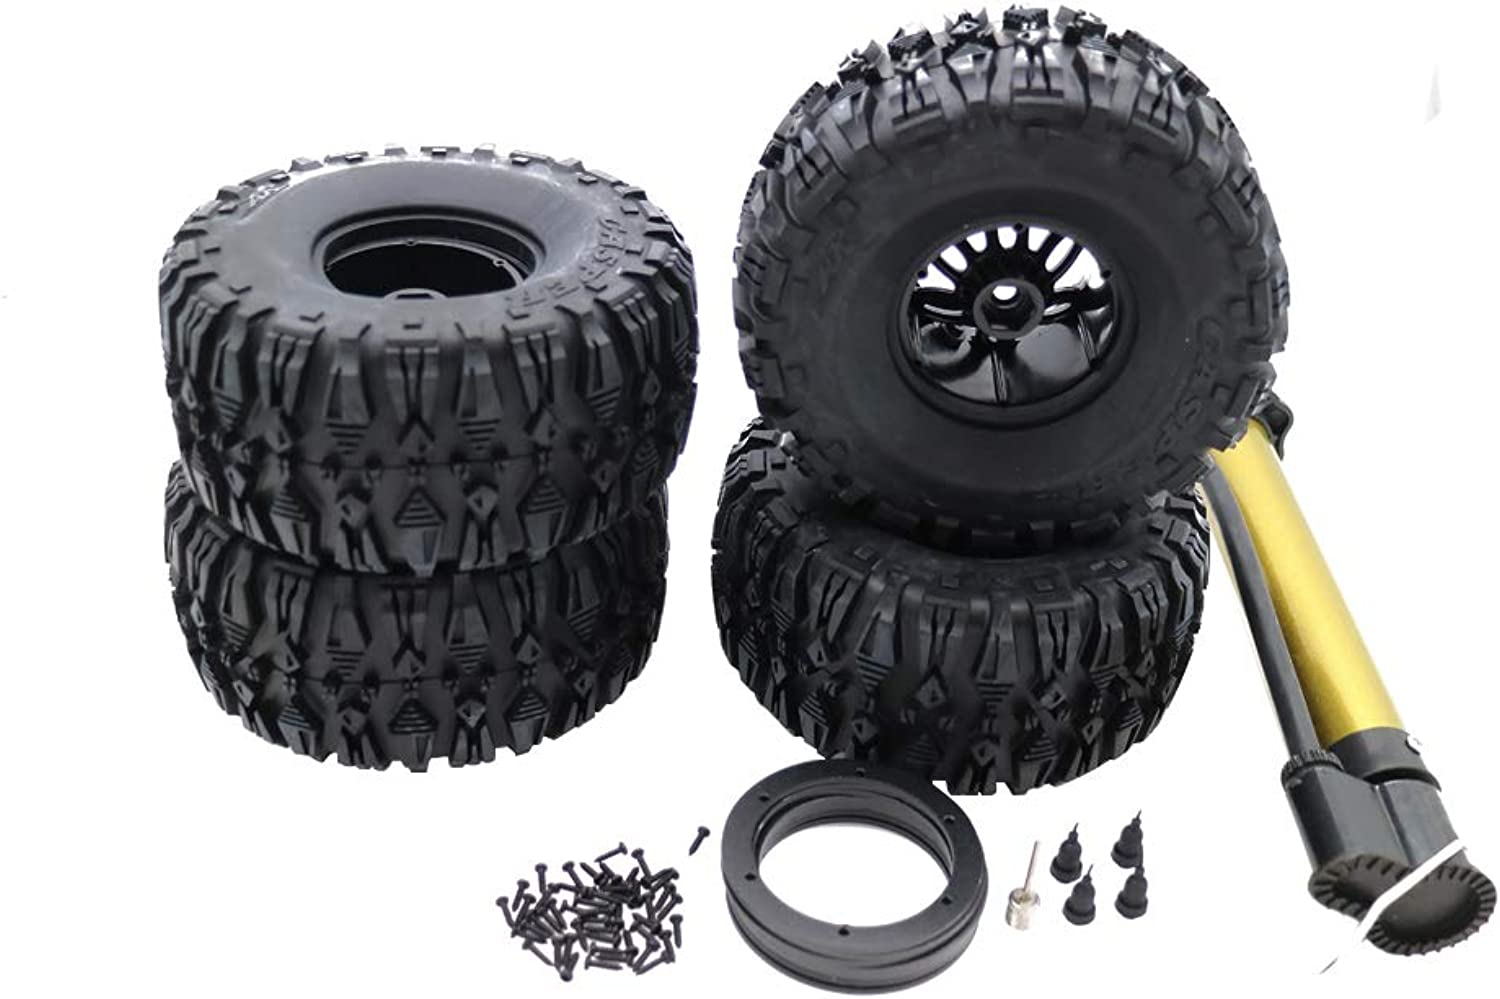 RCAWD AirFilled Inflated 2.2 Bead Lock Wheel Tire Tread for Rc 1 10 Rock Crawler Monster Truck(Black)